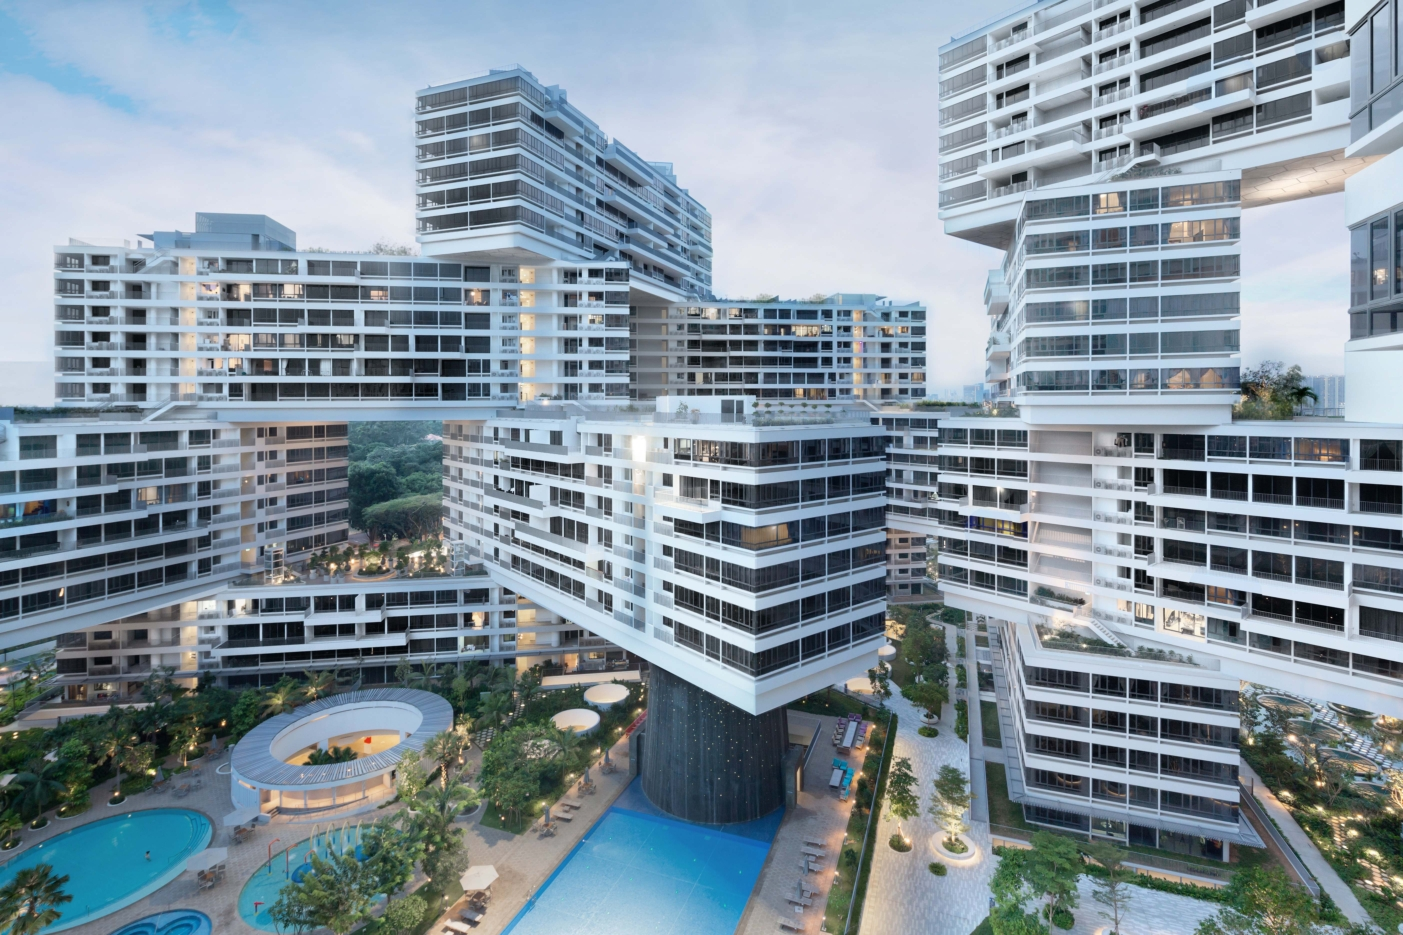 The Interlace by OMA-Buro Ole Scheeren, Singapore